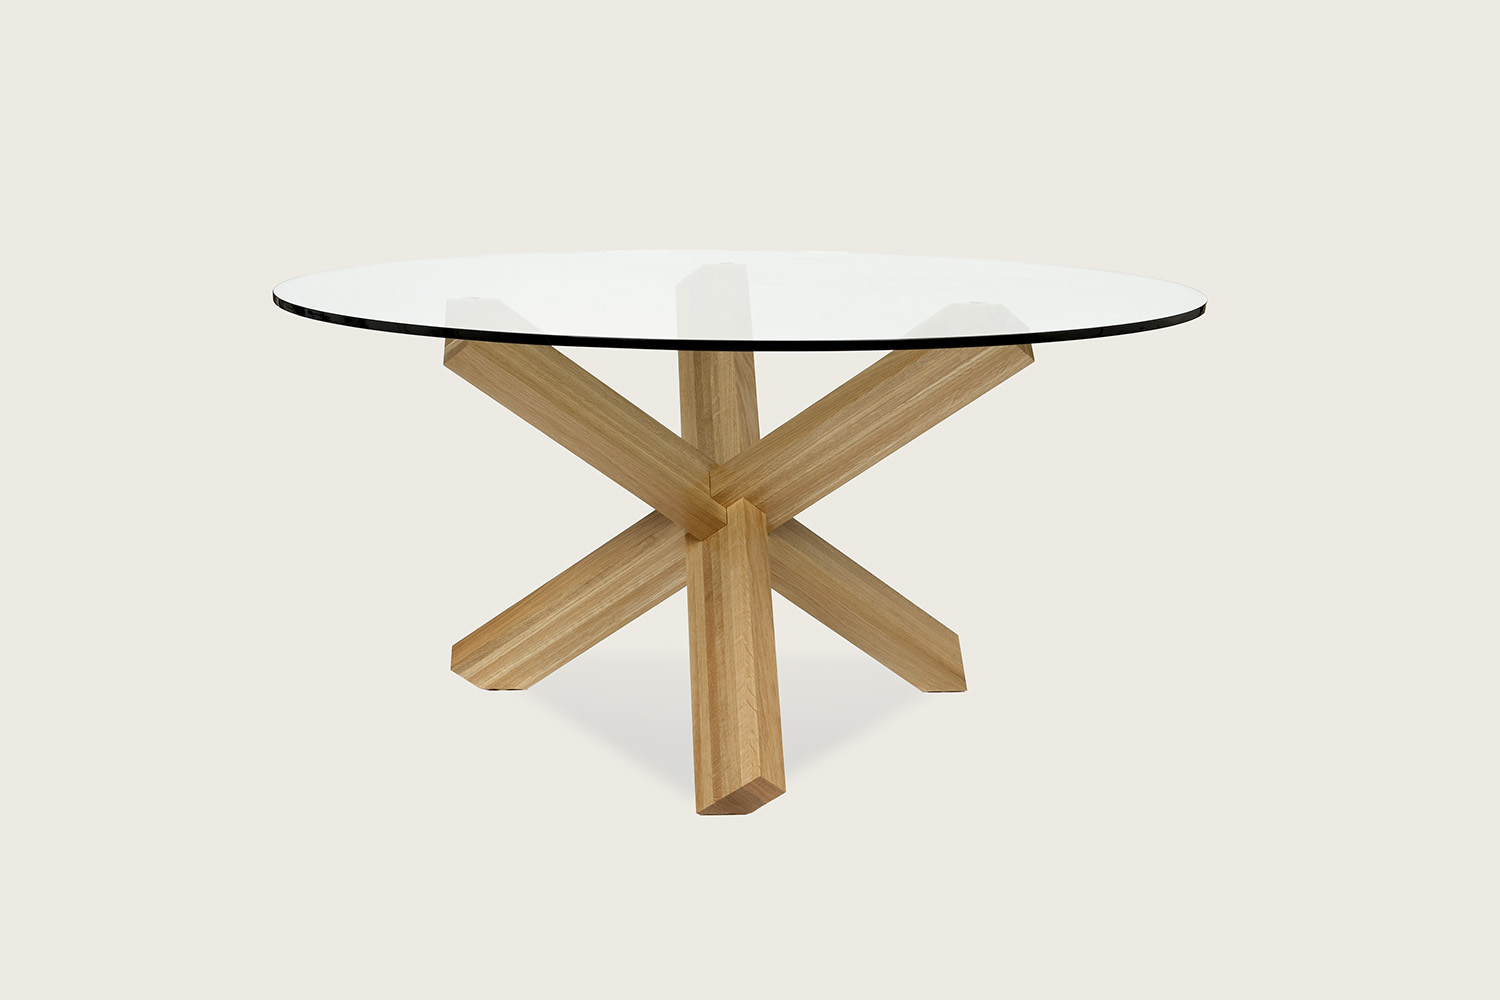 Think Pedestal Dining Table in solid oak with glass top - Speke Klein